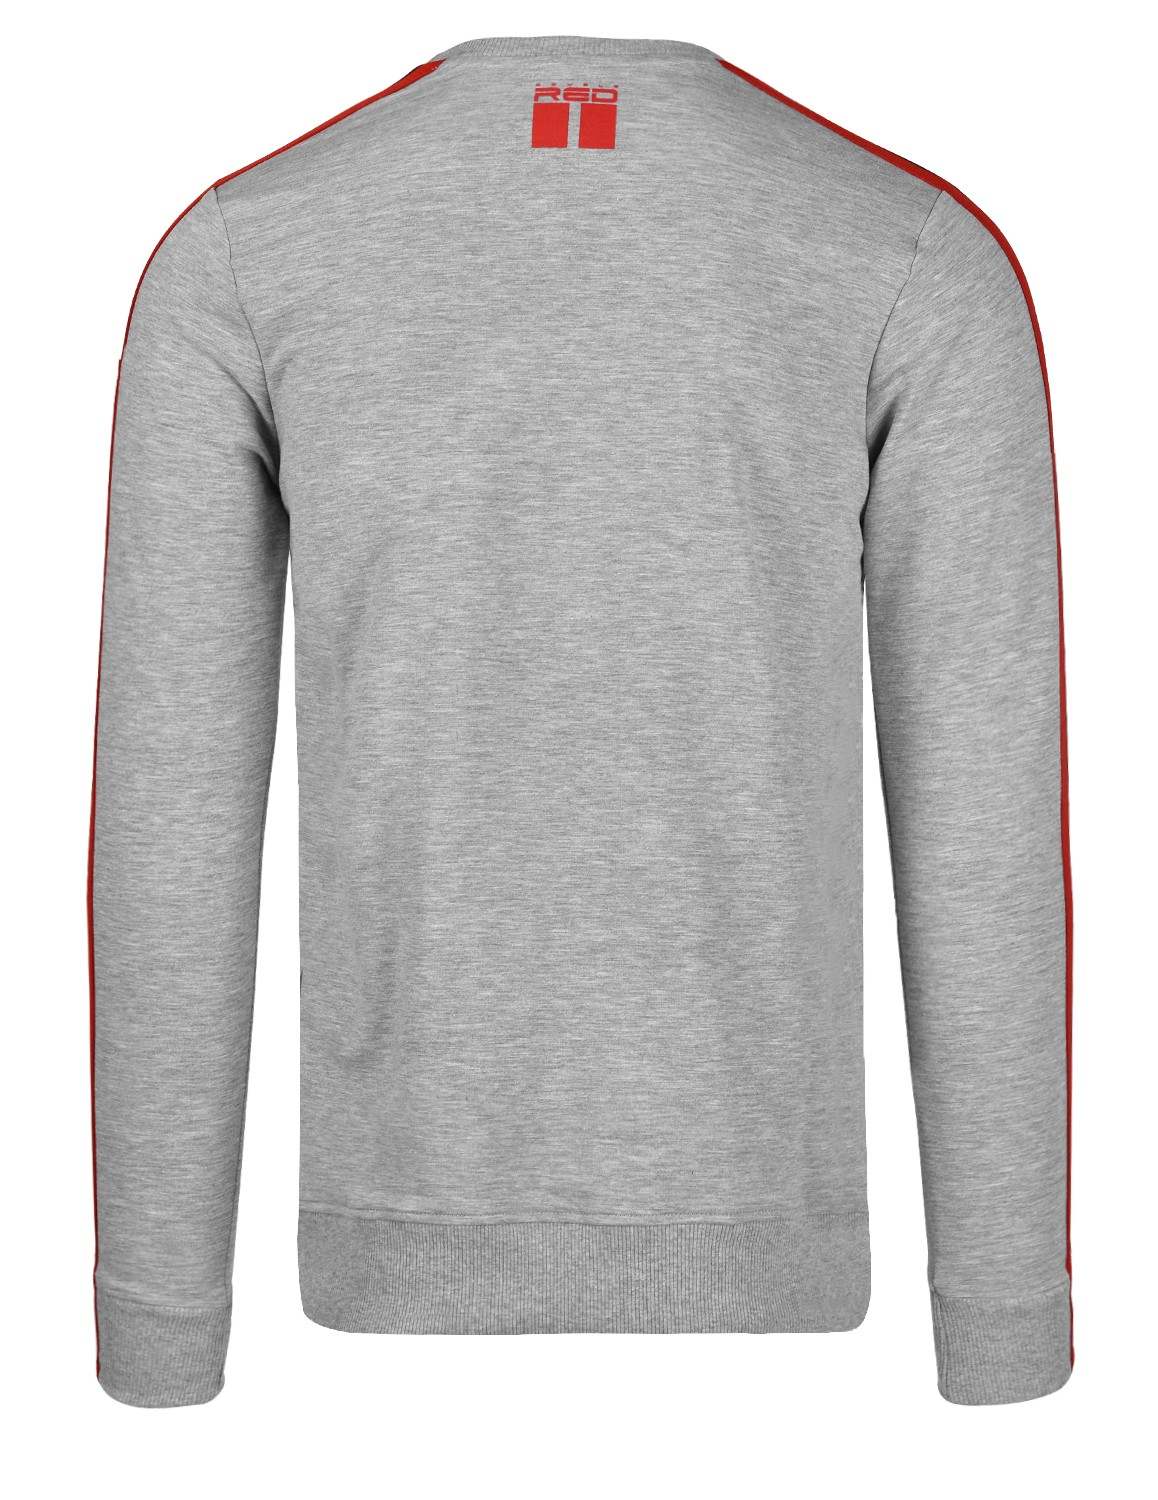 Sweatshirt FABULOUS Grey